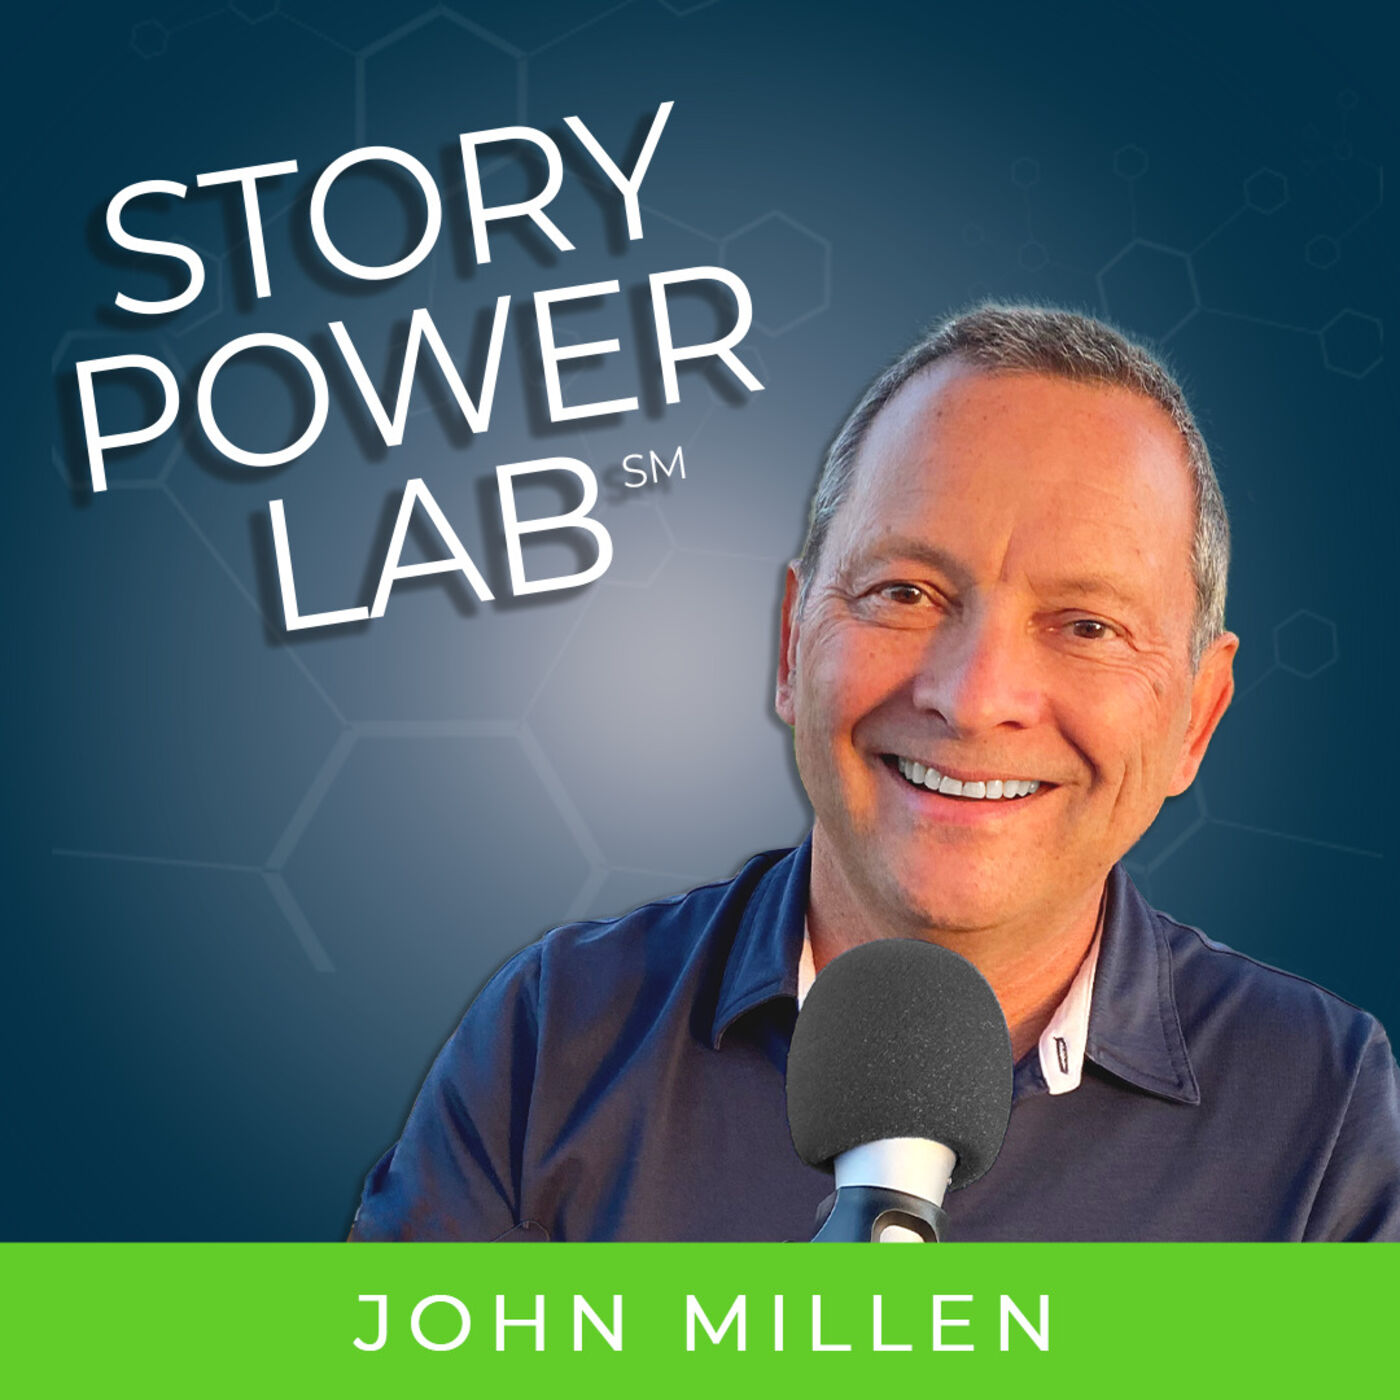 Story Power Lab with John Millen